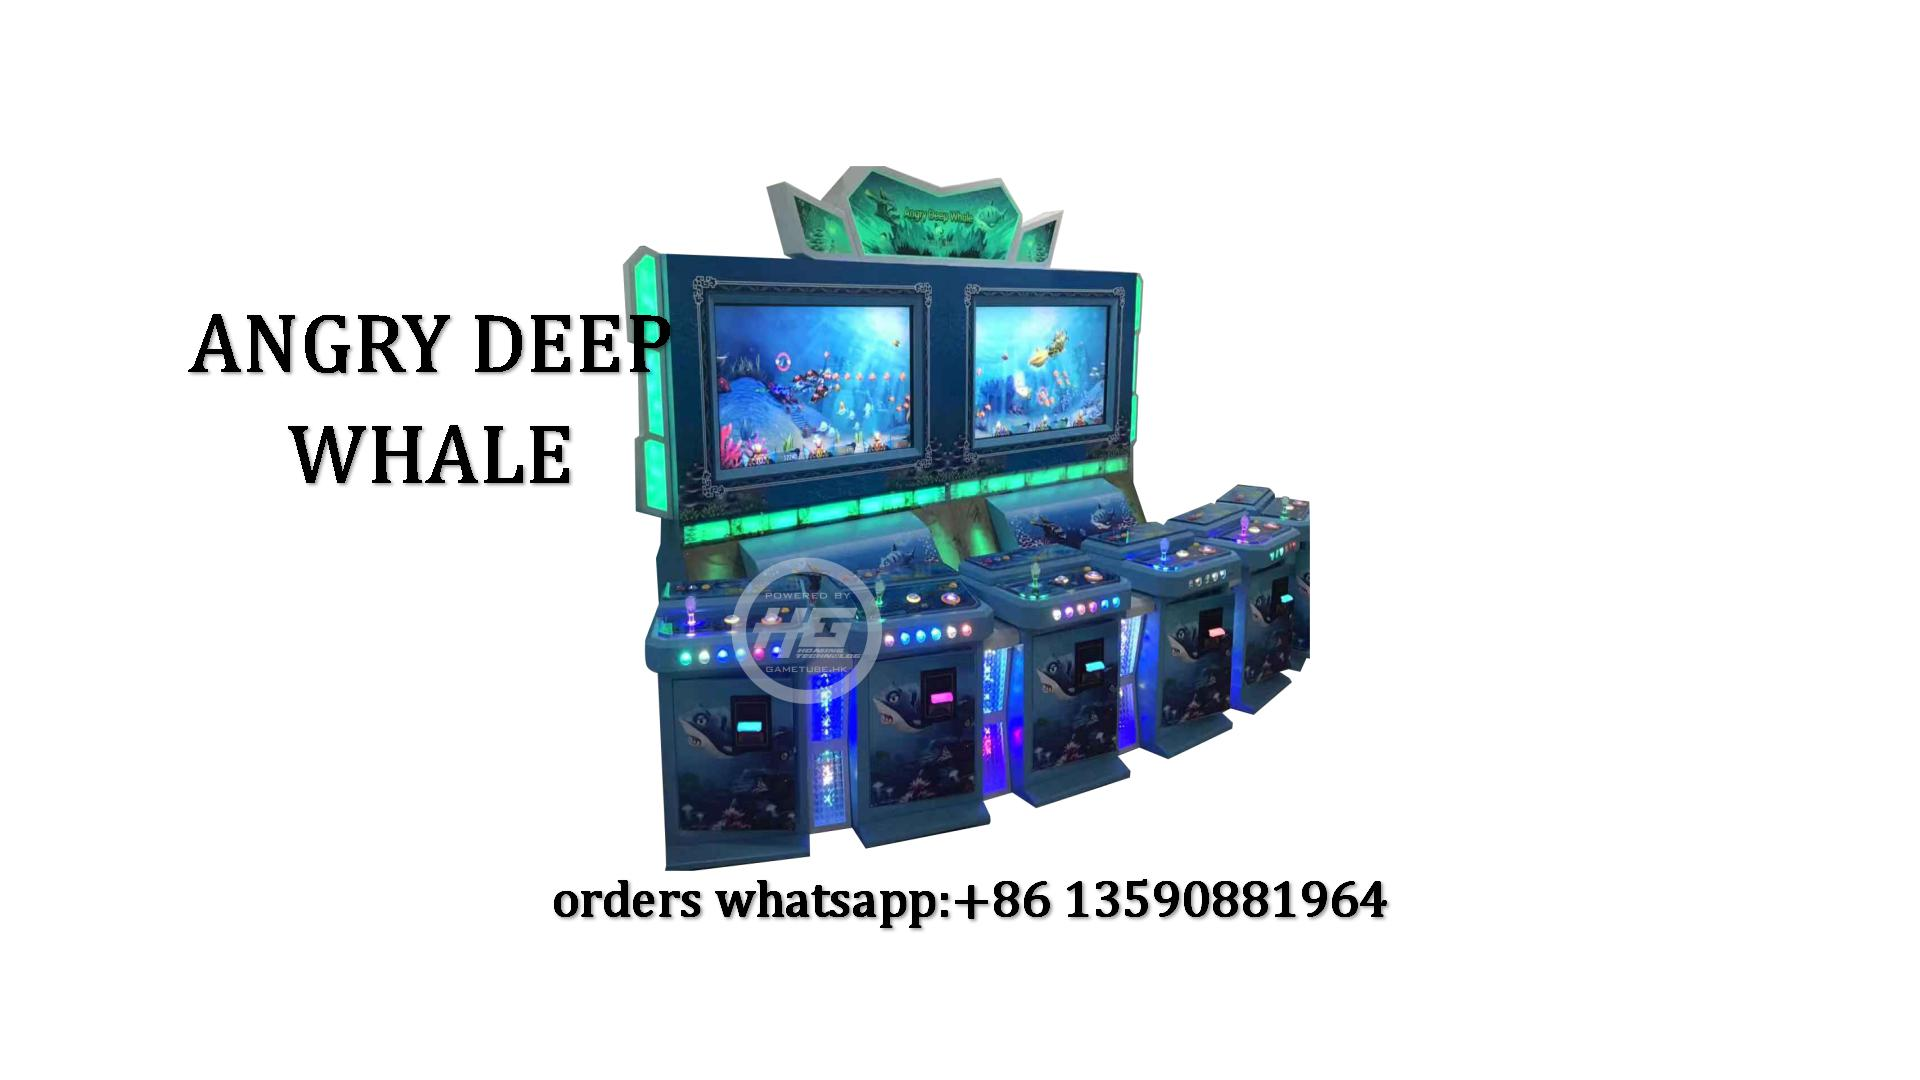 Taiwan Original Angry Deep Whale Fishing Game,6 Players Upright Fish Game Machine For Sale